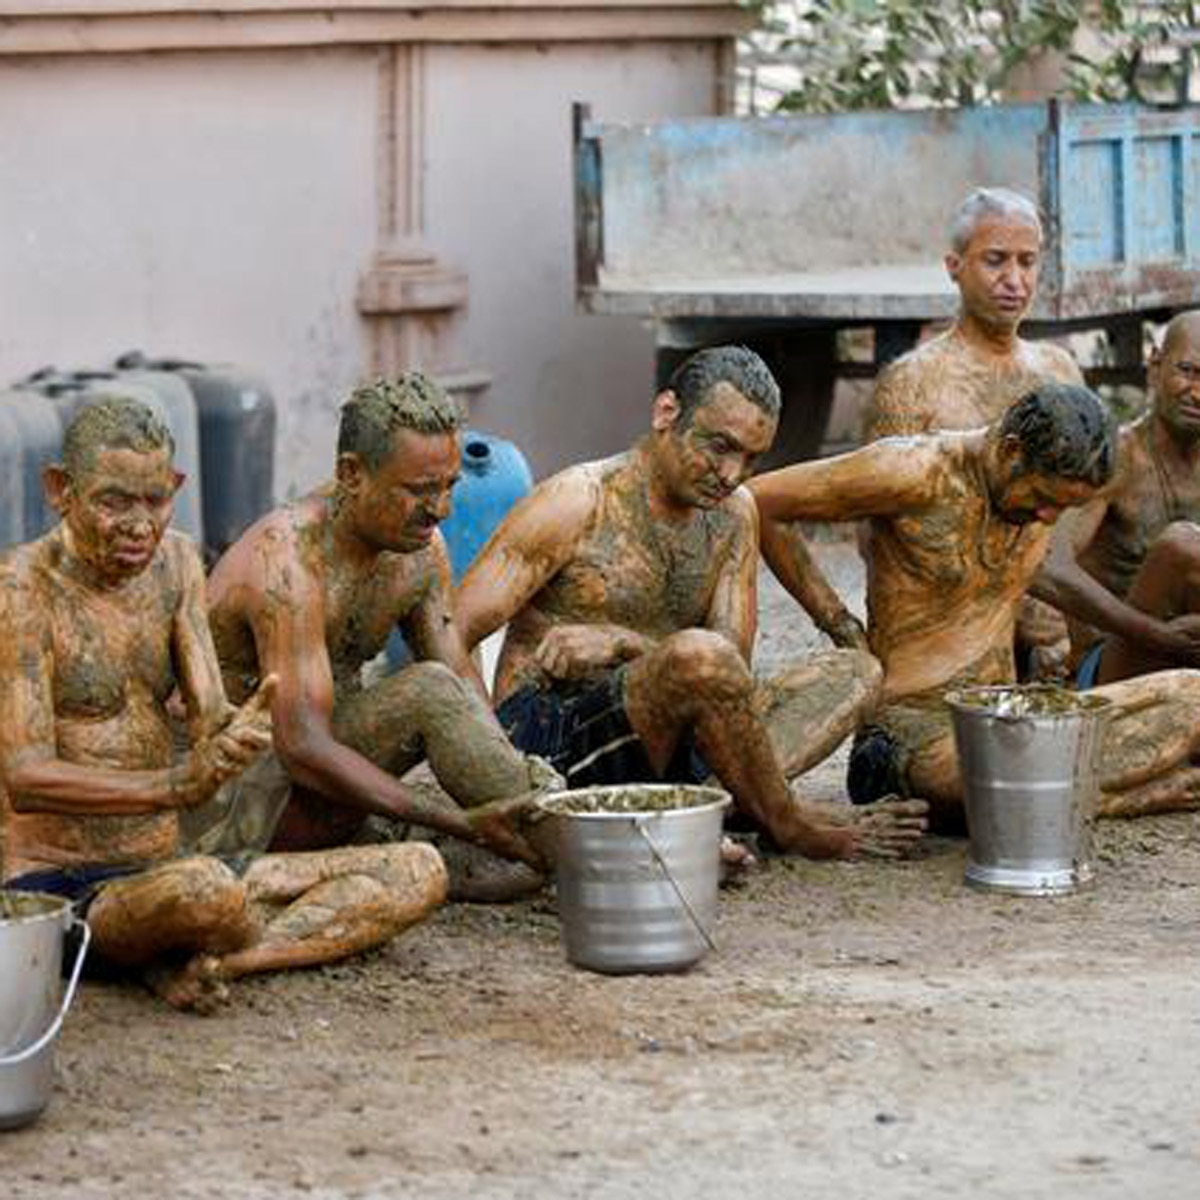 Indians putting cow dung